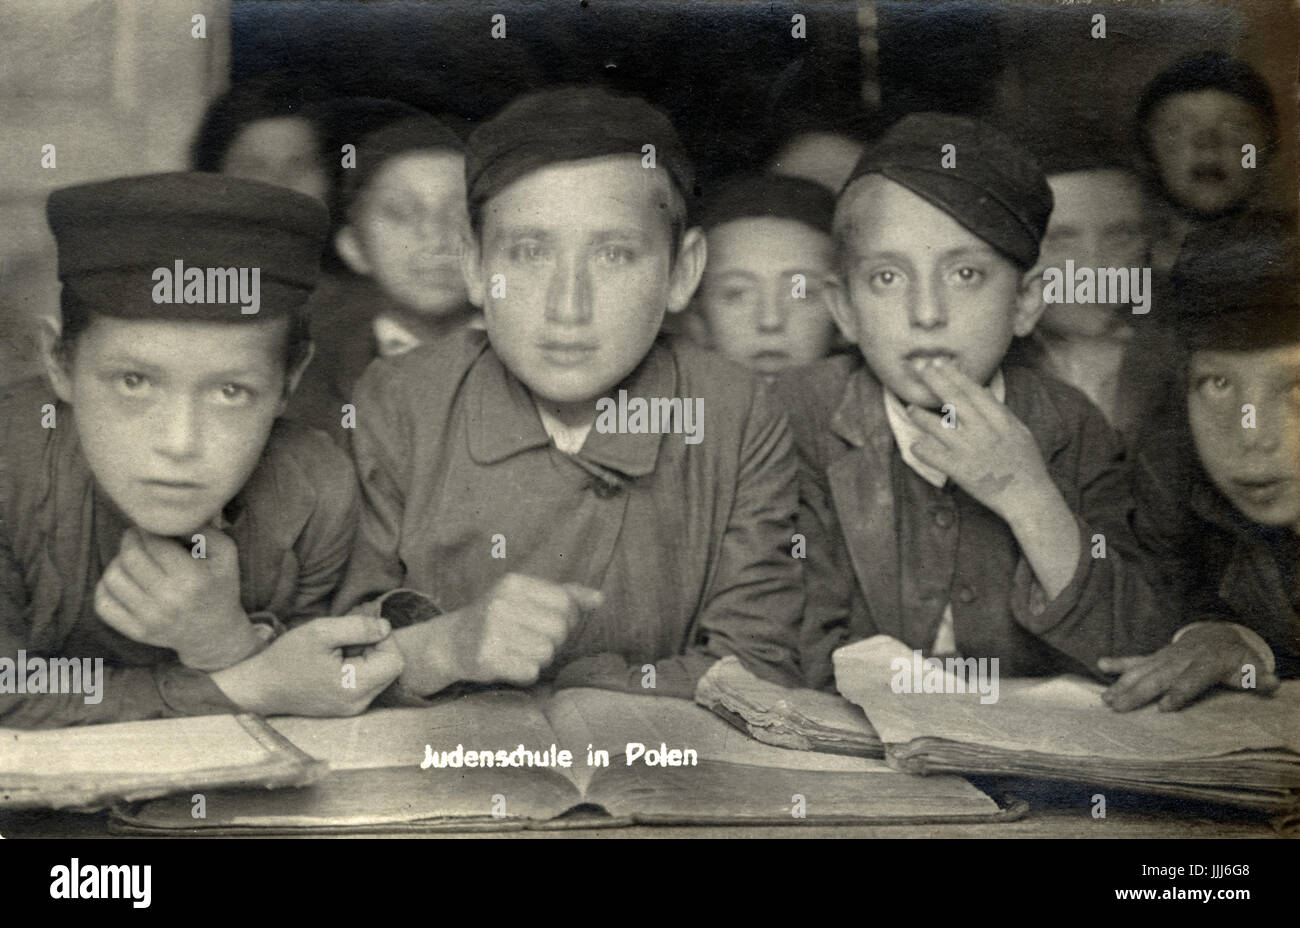 Schoolboys learning at Jewish religious  school / Cheder  in Poland  in 1916. Wearing caps. Field photo - taken - Stock Image